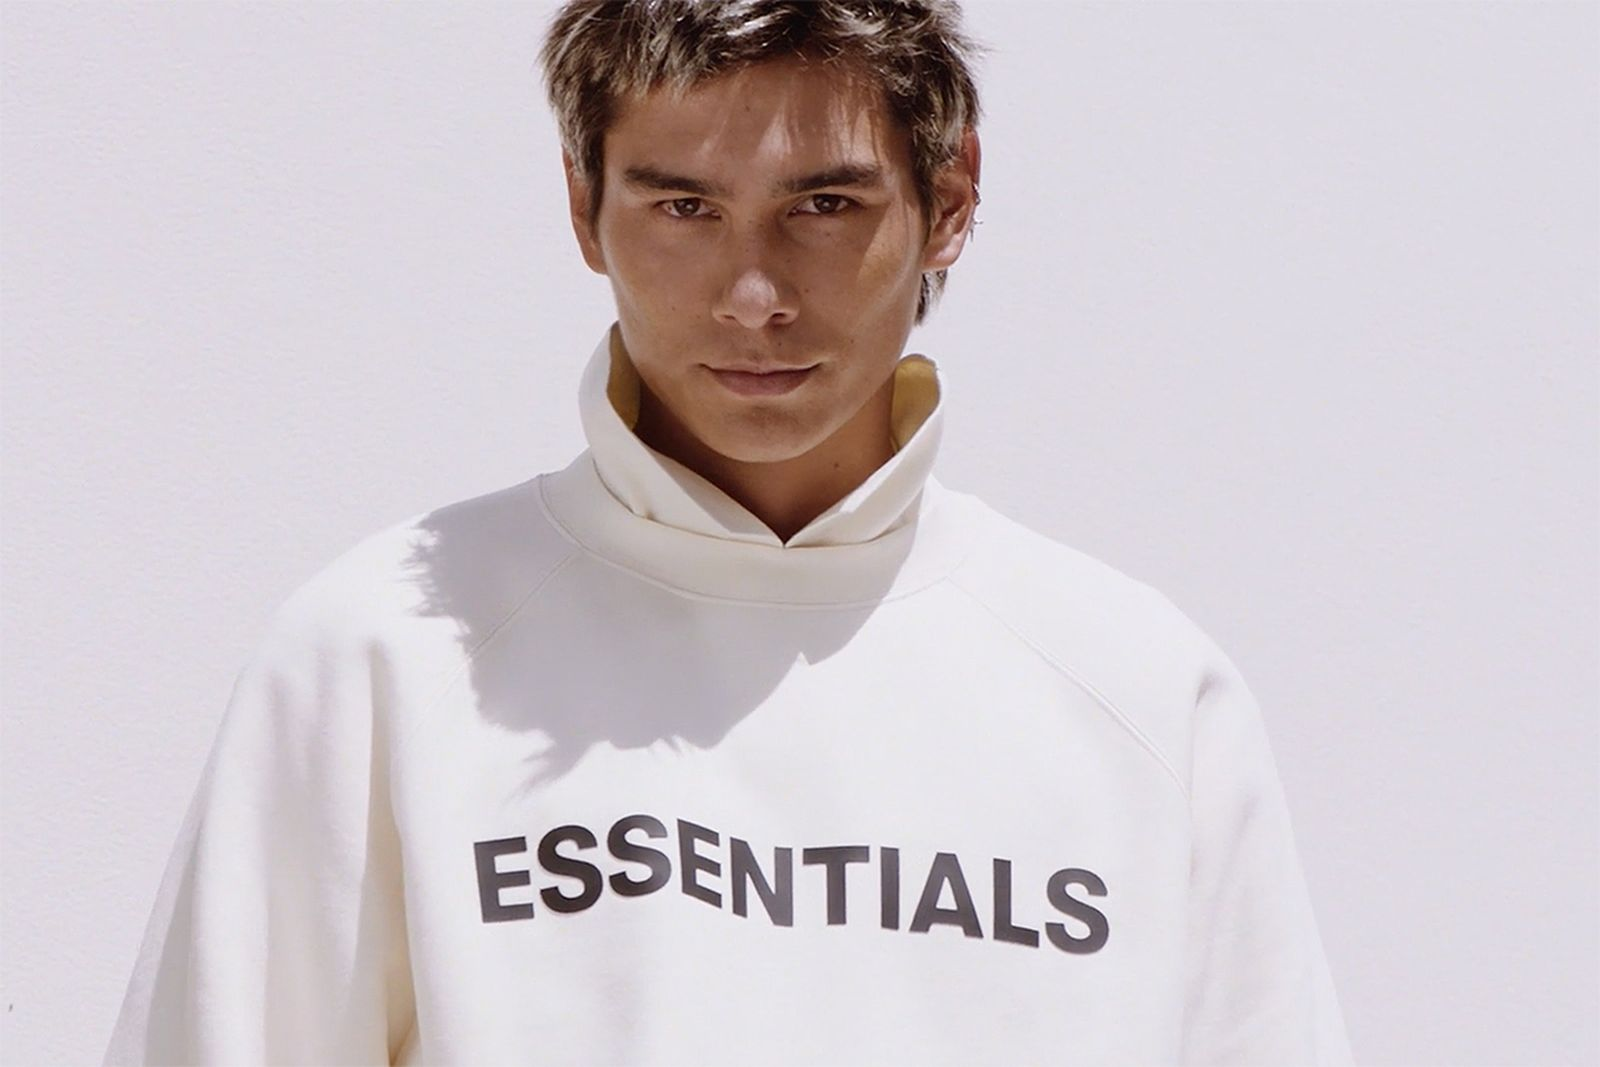 Evan Mock Fear of God ESSENTIALS Spring 2020 campaign